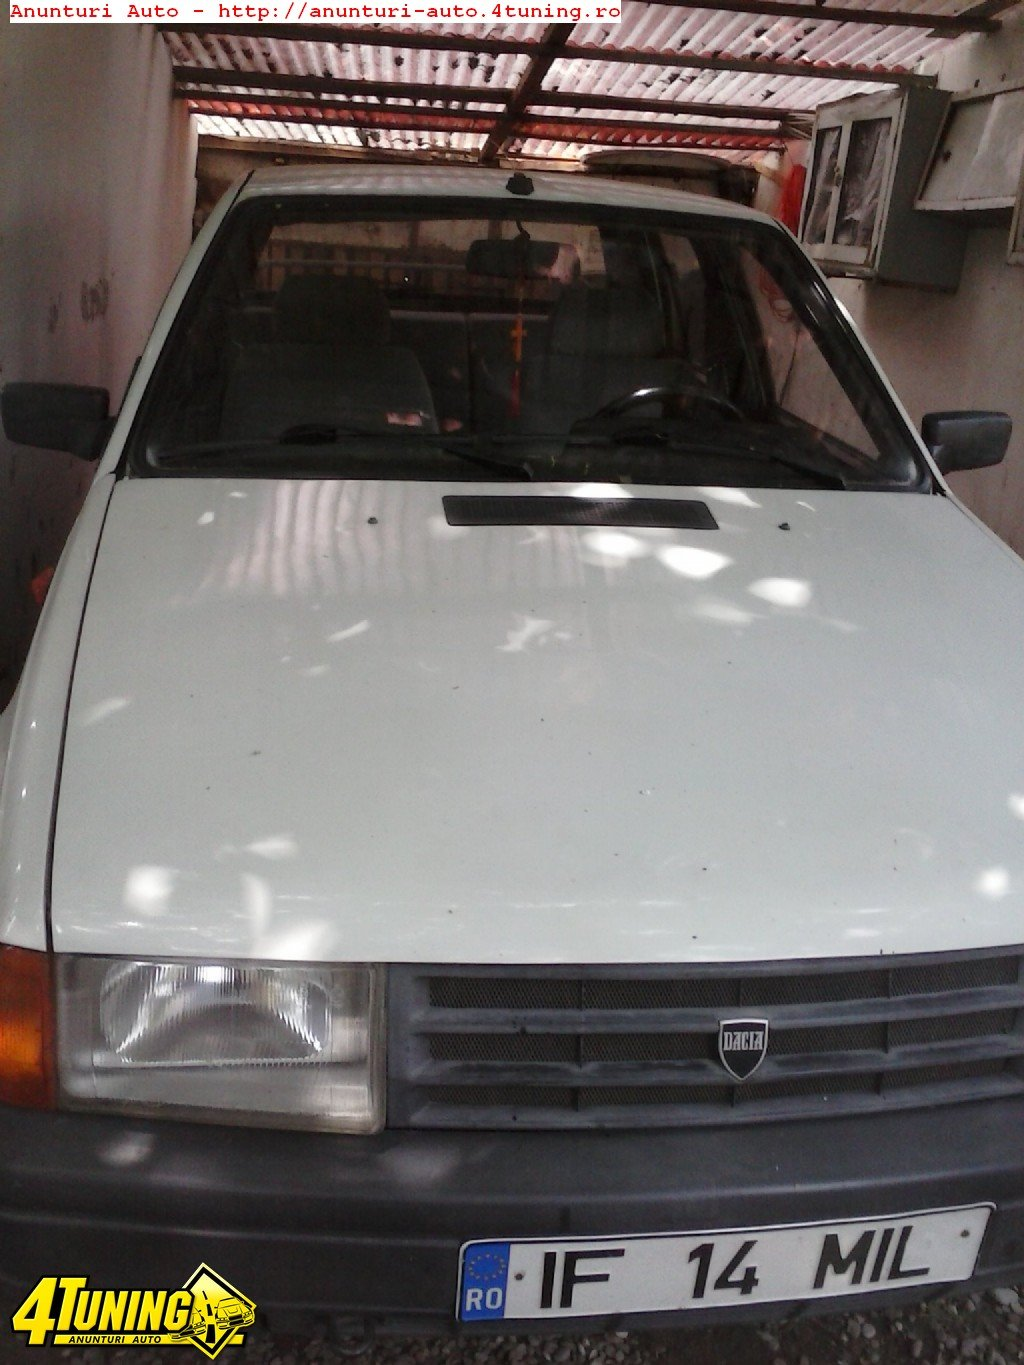 Pictures of dacia nova 1994 #8